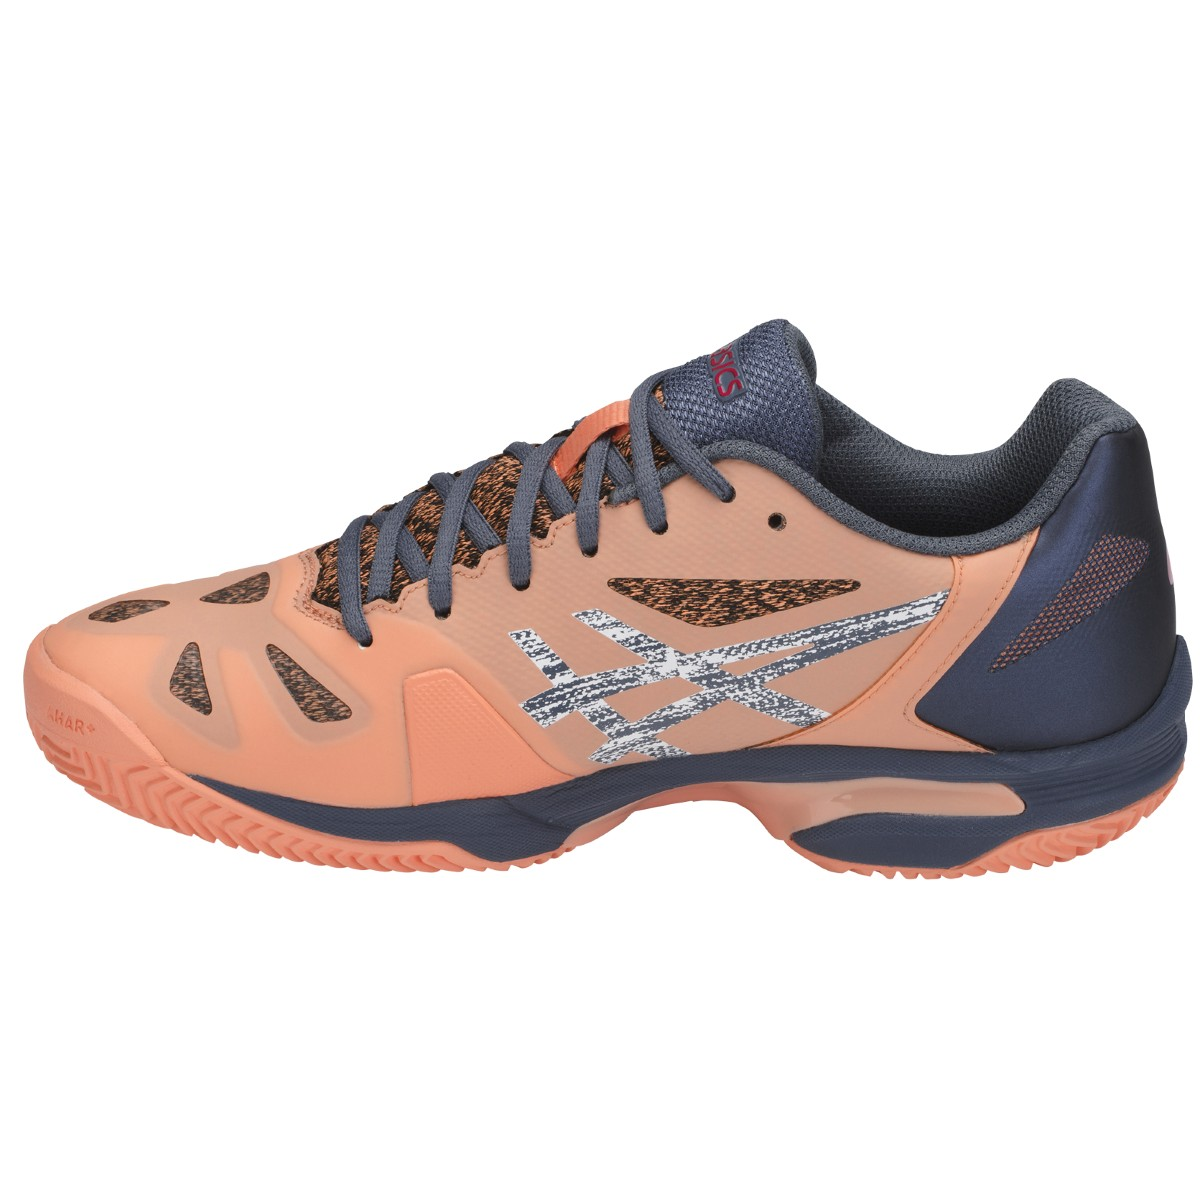 Lima Promotions Gel Femme Padelterre Asics Chaussures Battue vmNOnwy80P